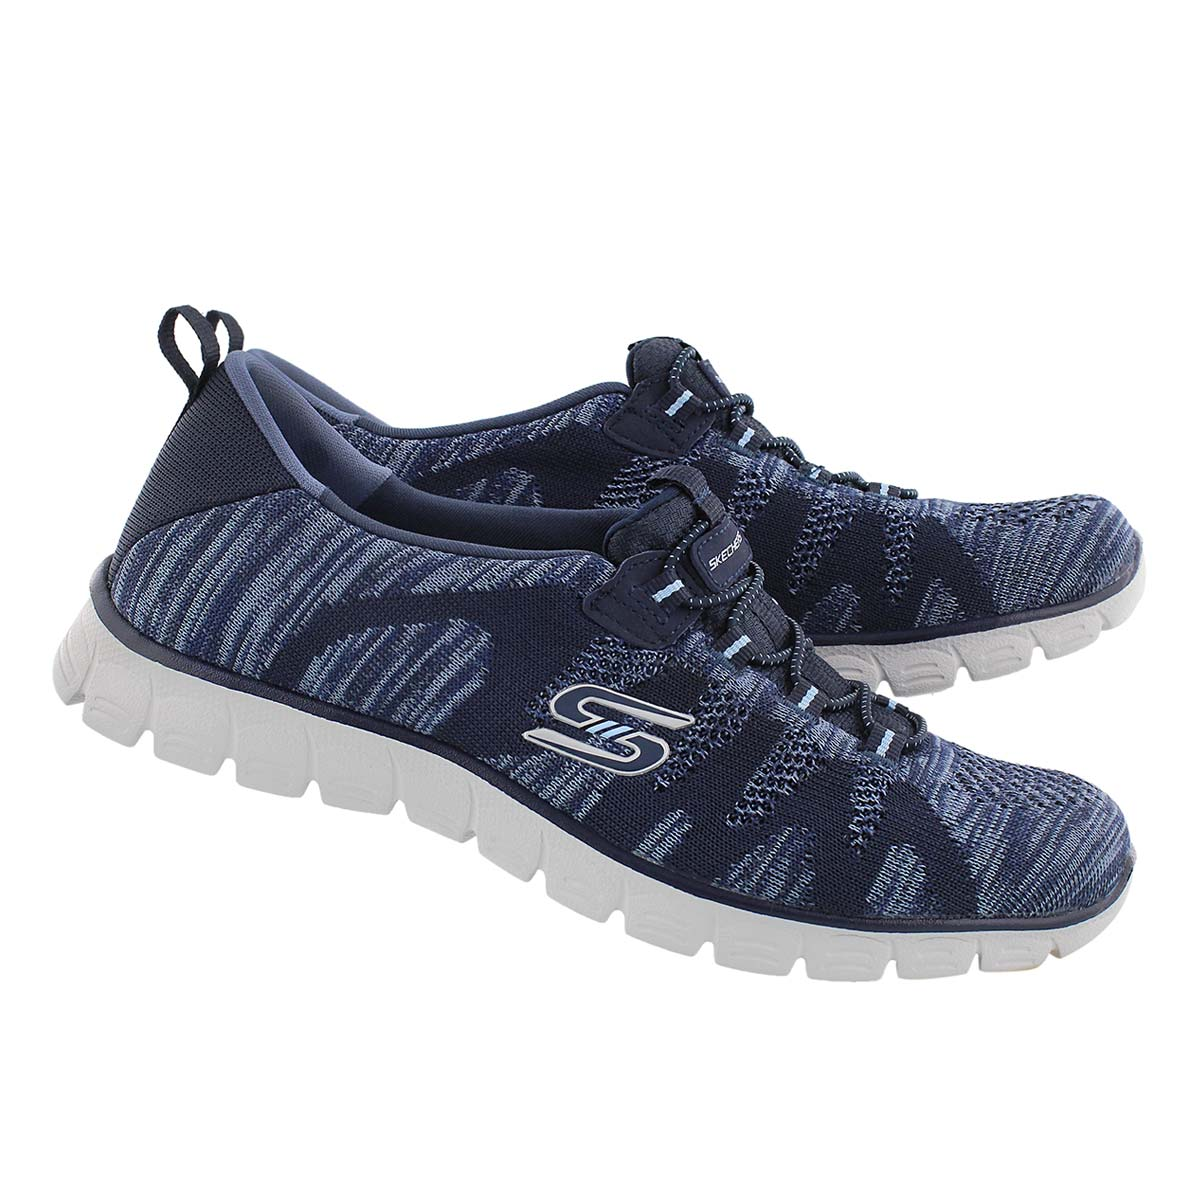 Lds Take-The-Lead navy sneaker